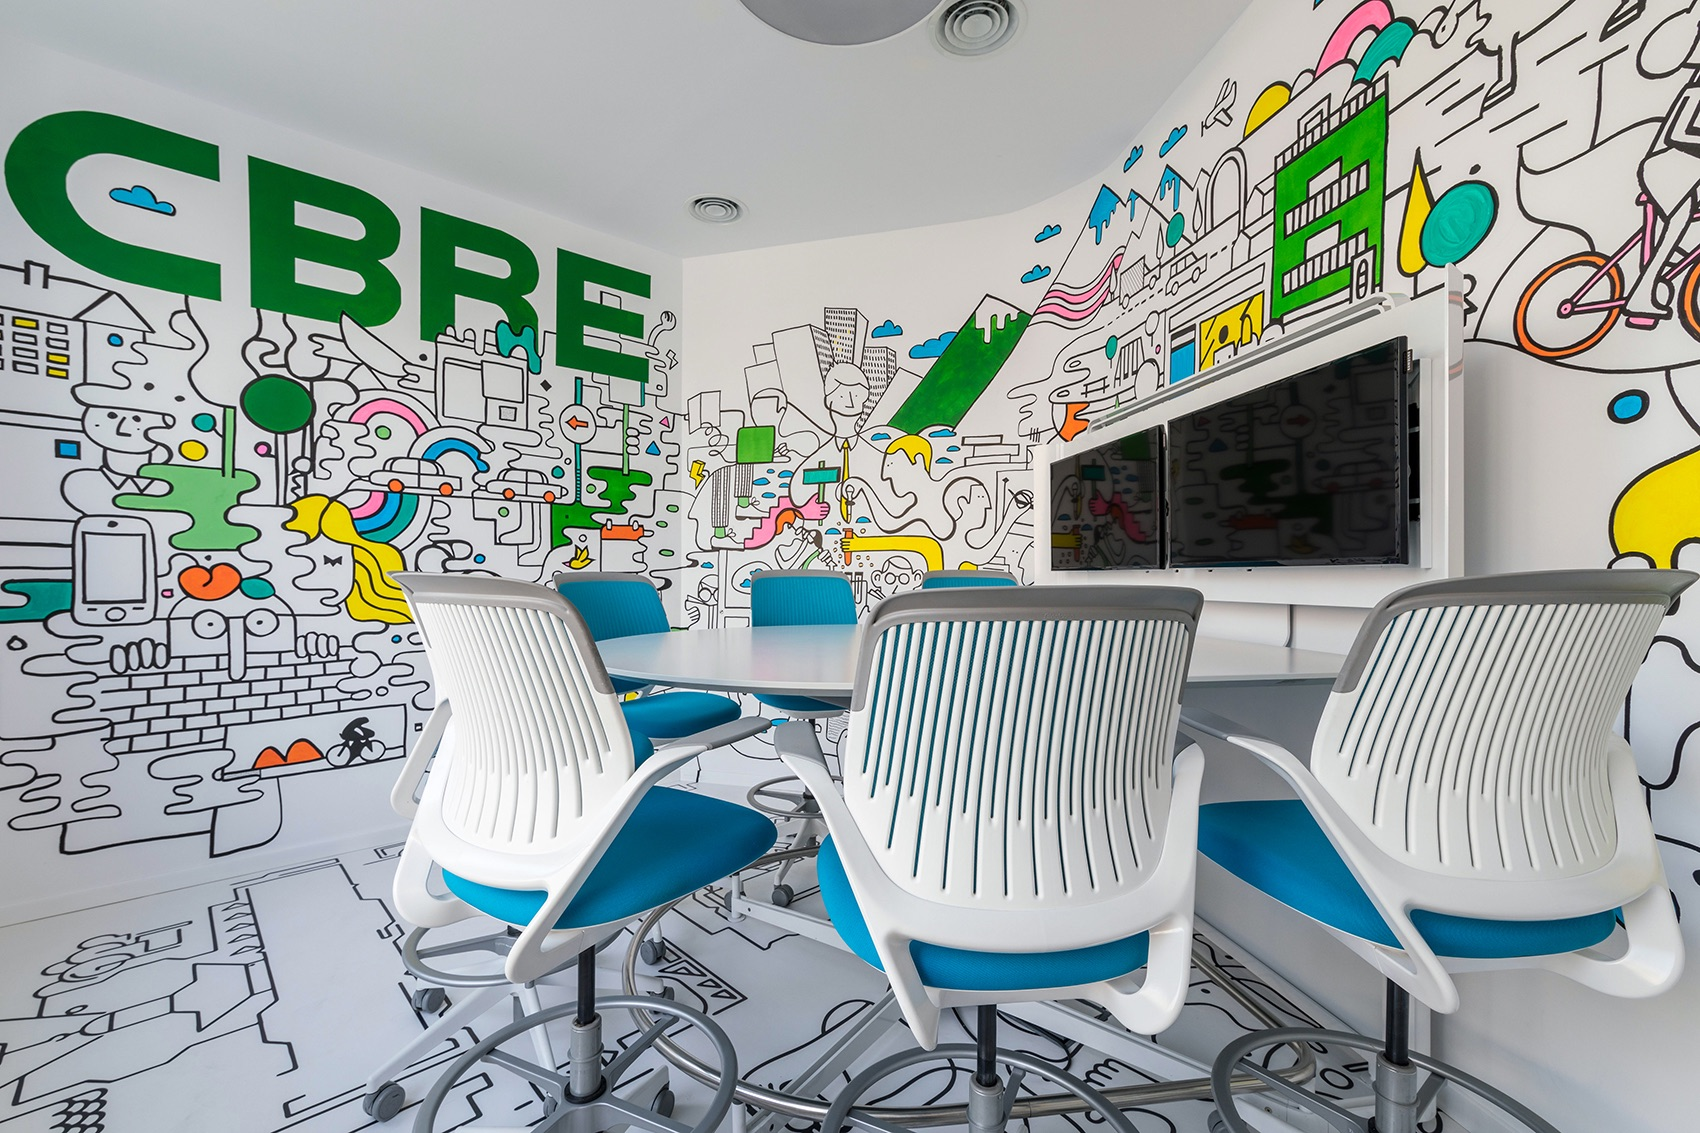 cbre-bucharest-office-14